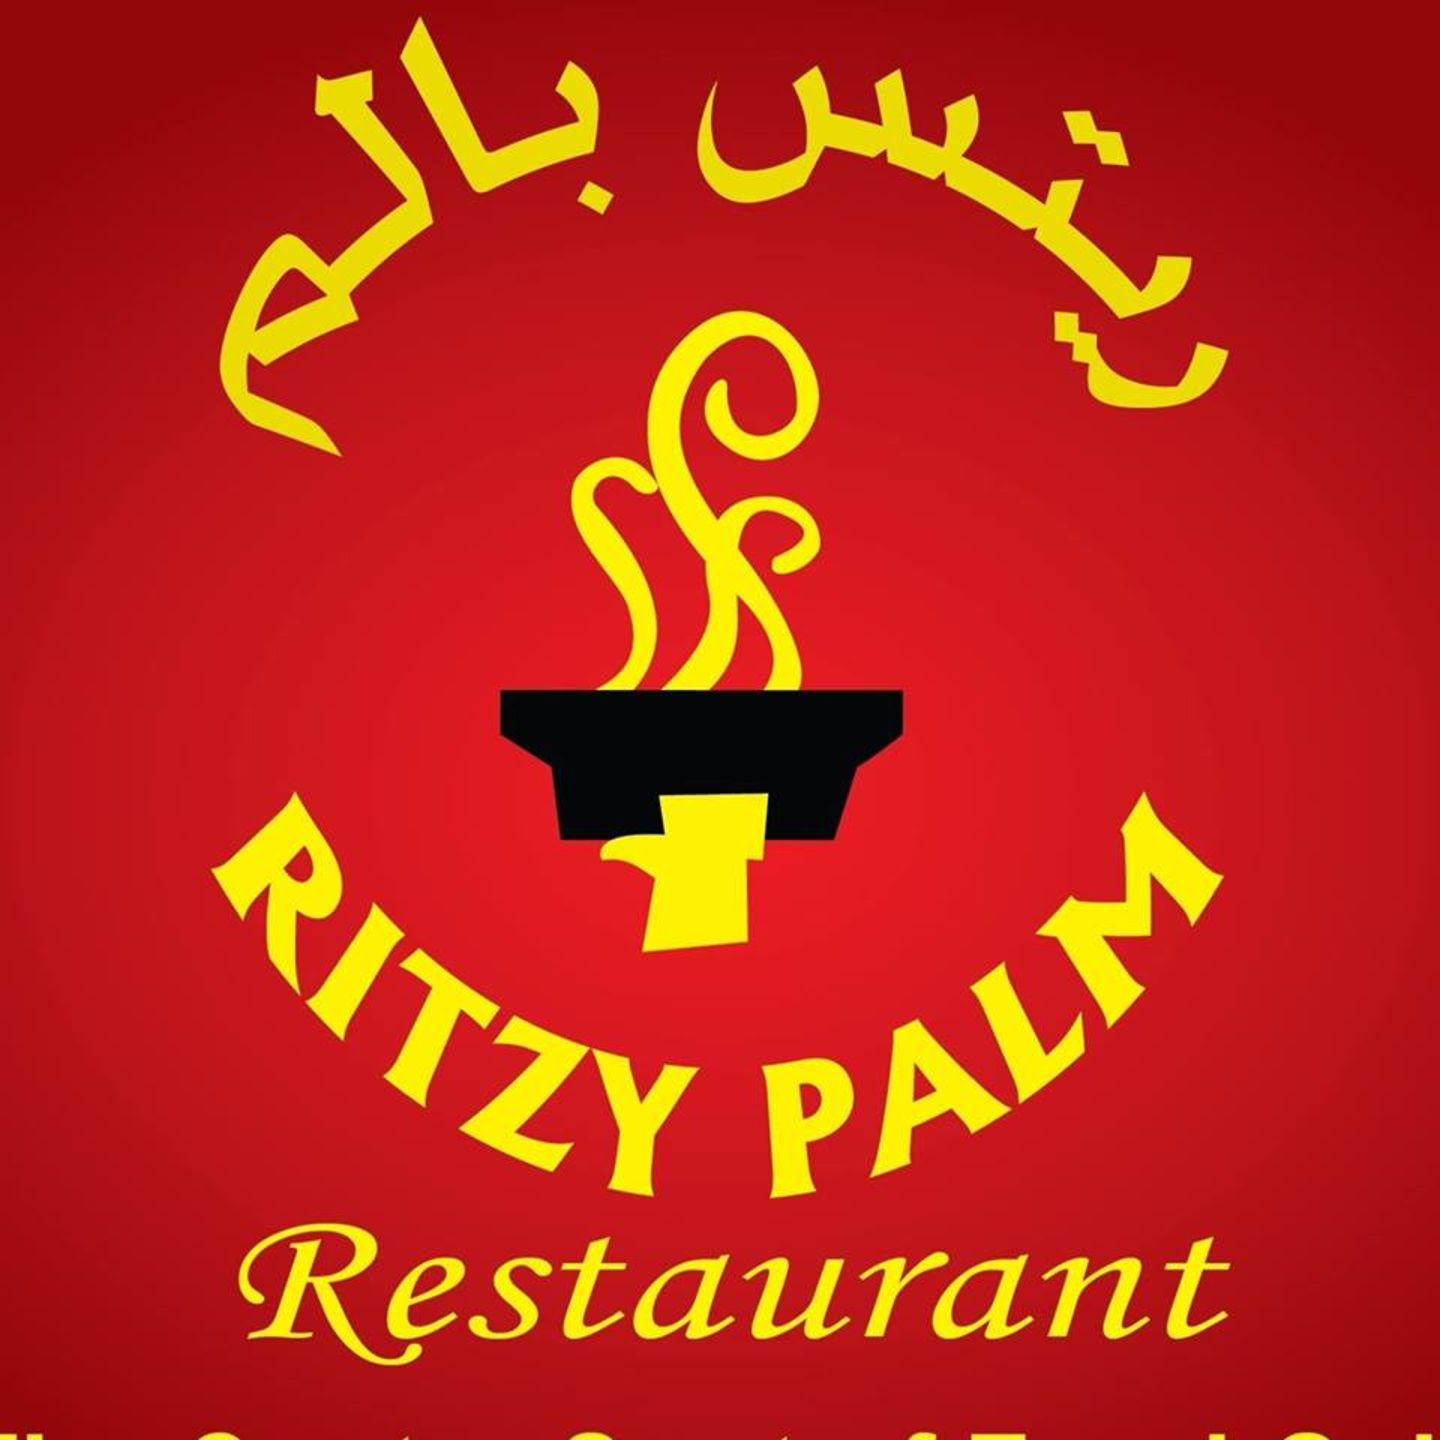 HiDubai-business-ritzy-palm-food-beverage-restaurants-bars-al-nahda-2-dubai-2